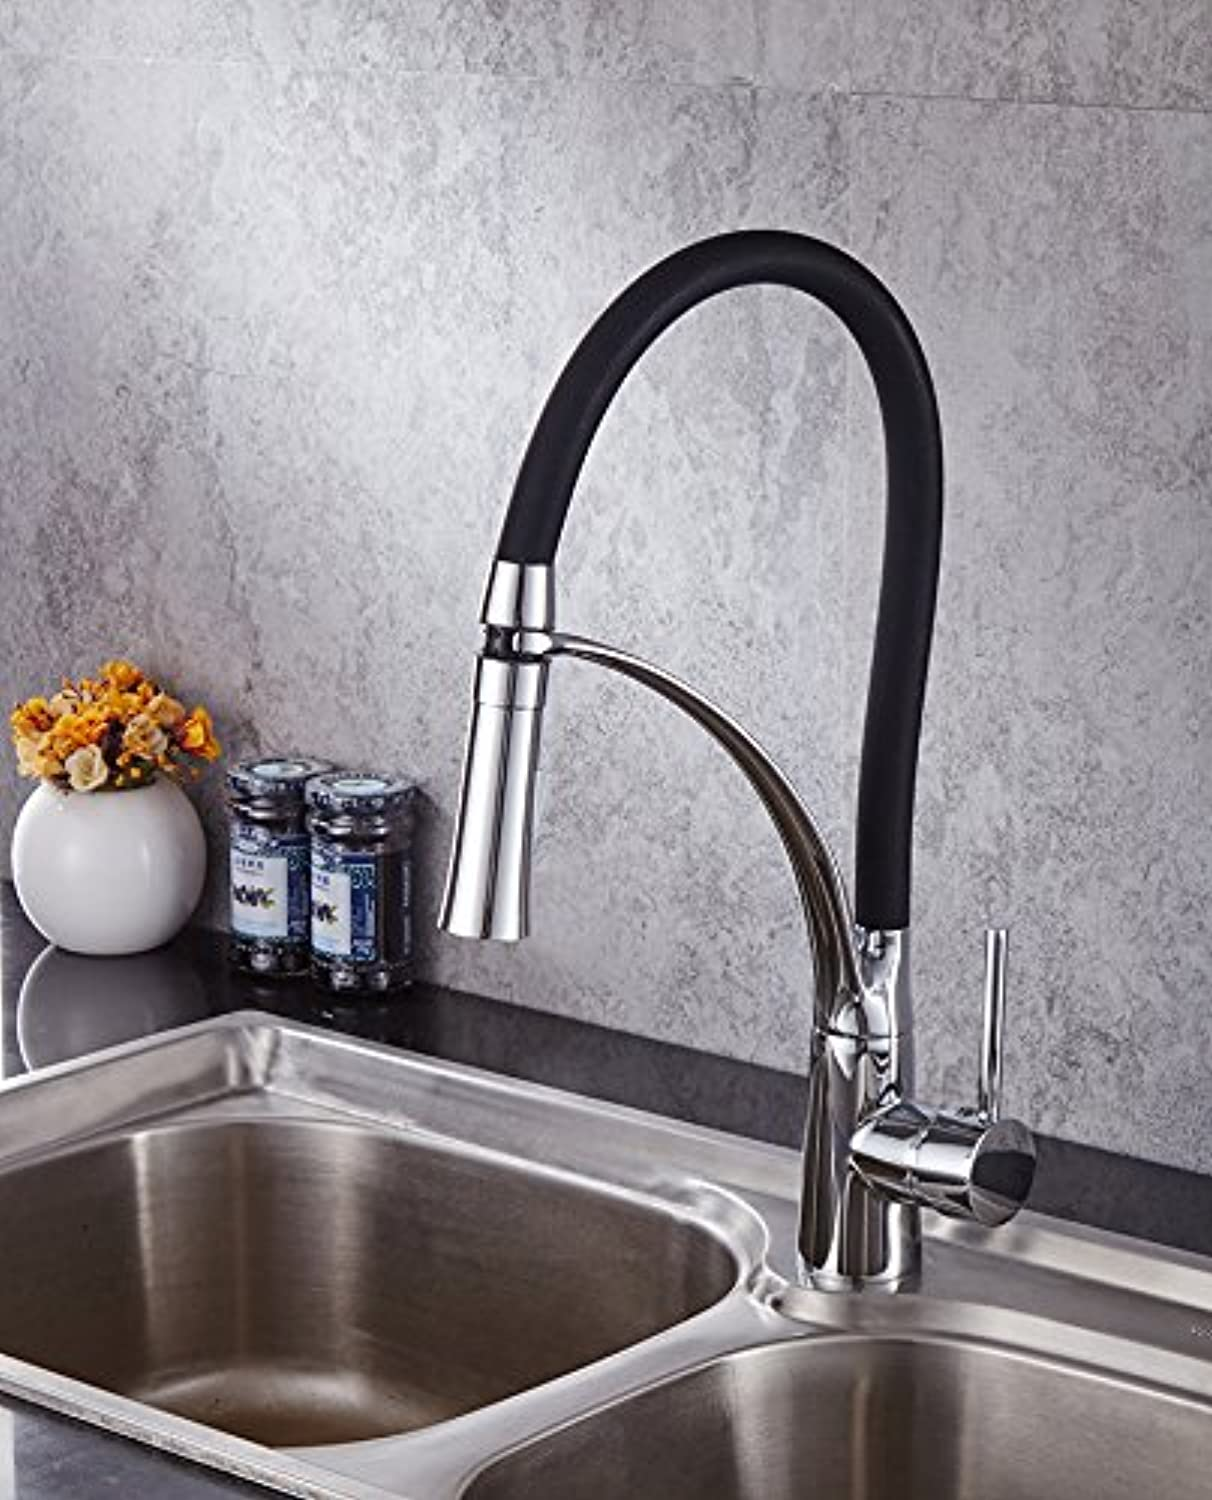 Fbict Kitchen Faucet Spring Kitchen Faucet Spring Faucet Single-Connected greenical Faucet Oukadi for Kitchen Bathroom Faucet Bid Tap